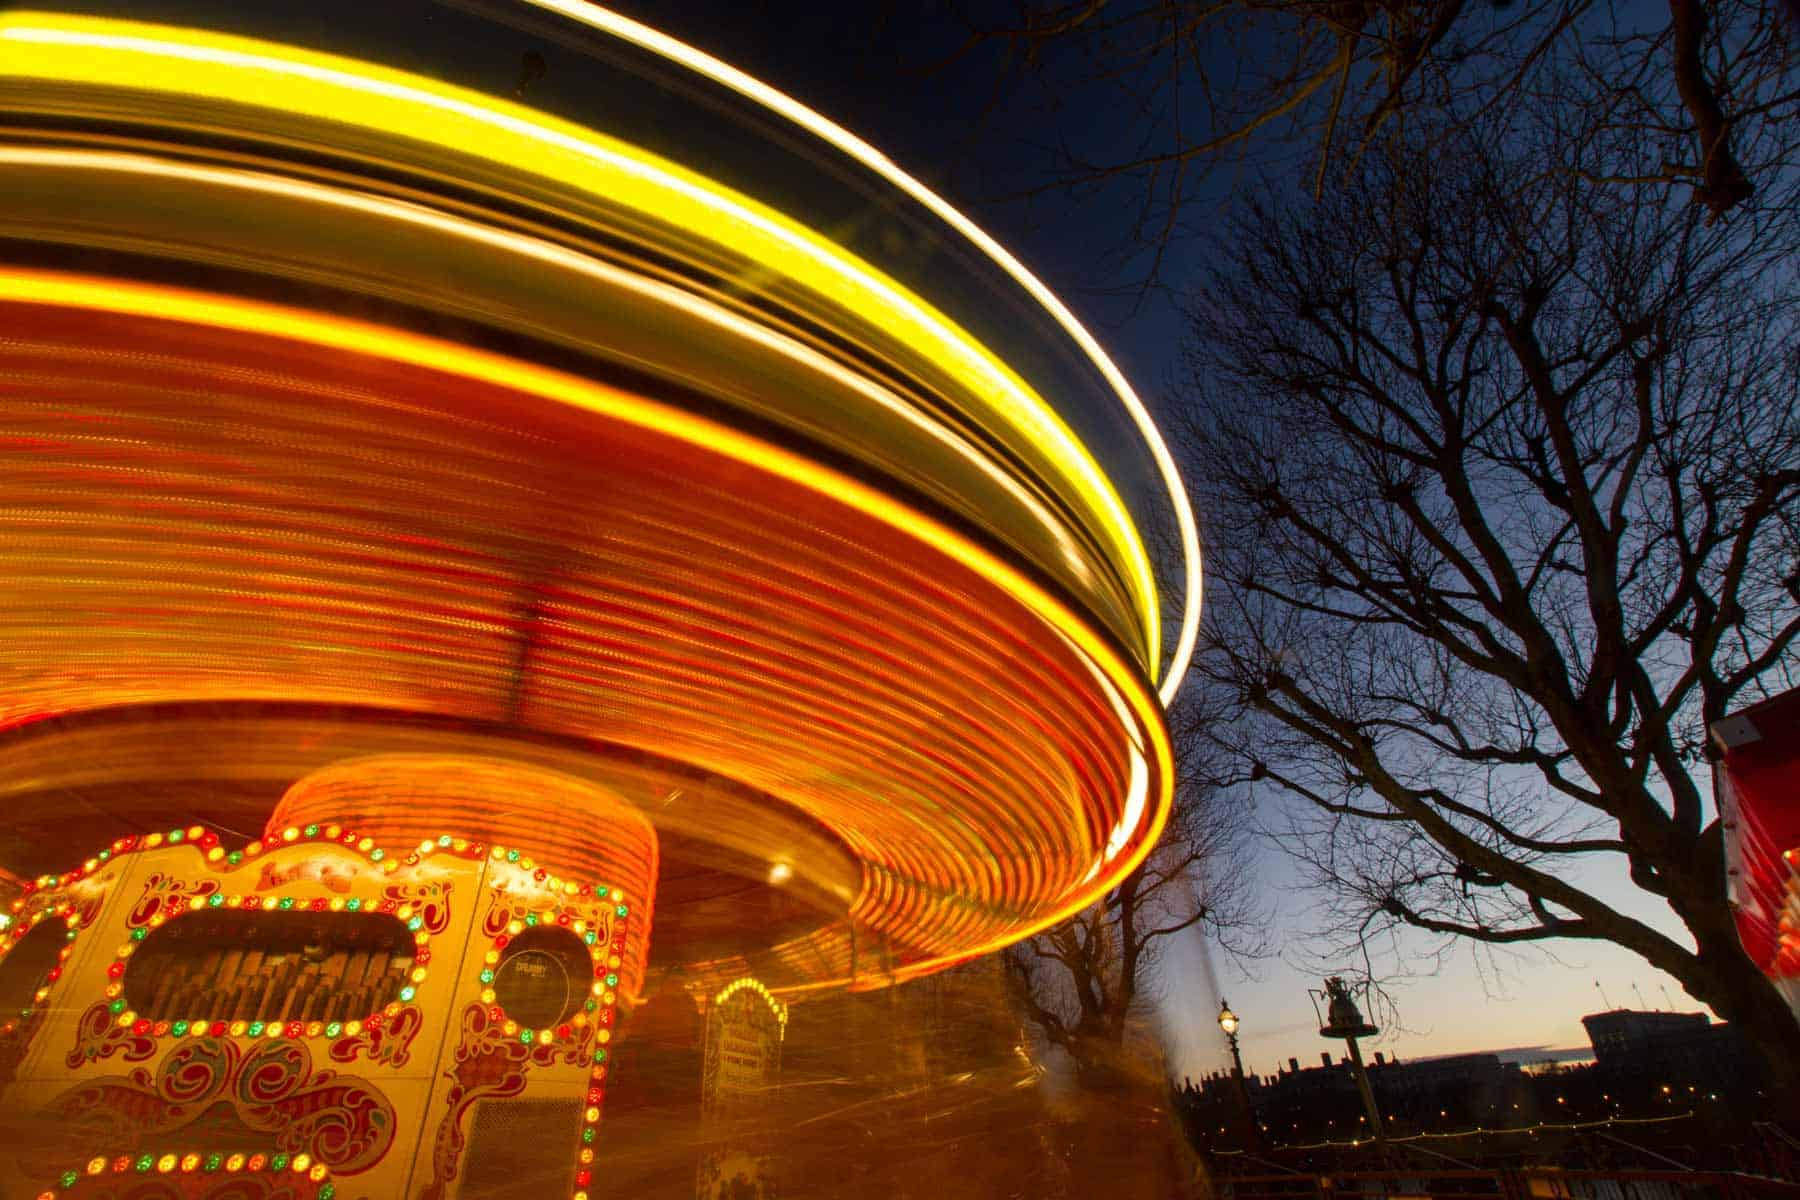 The light trails at a fun fair: beautiful and engaging.